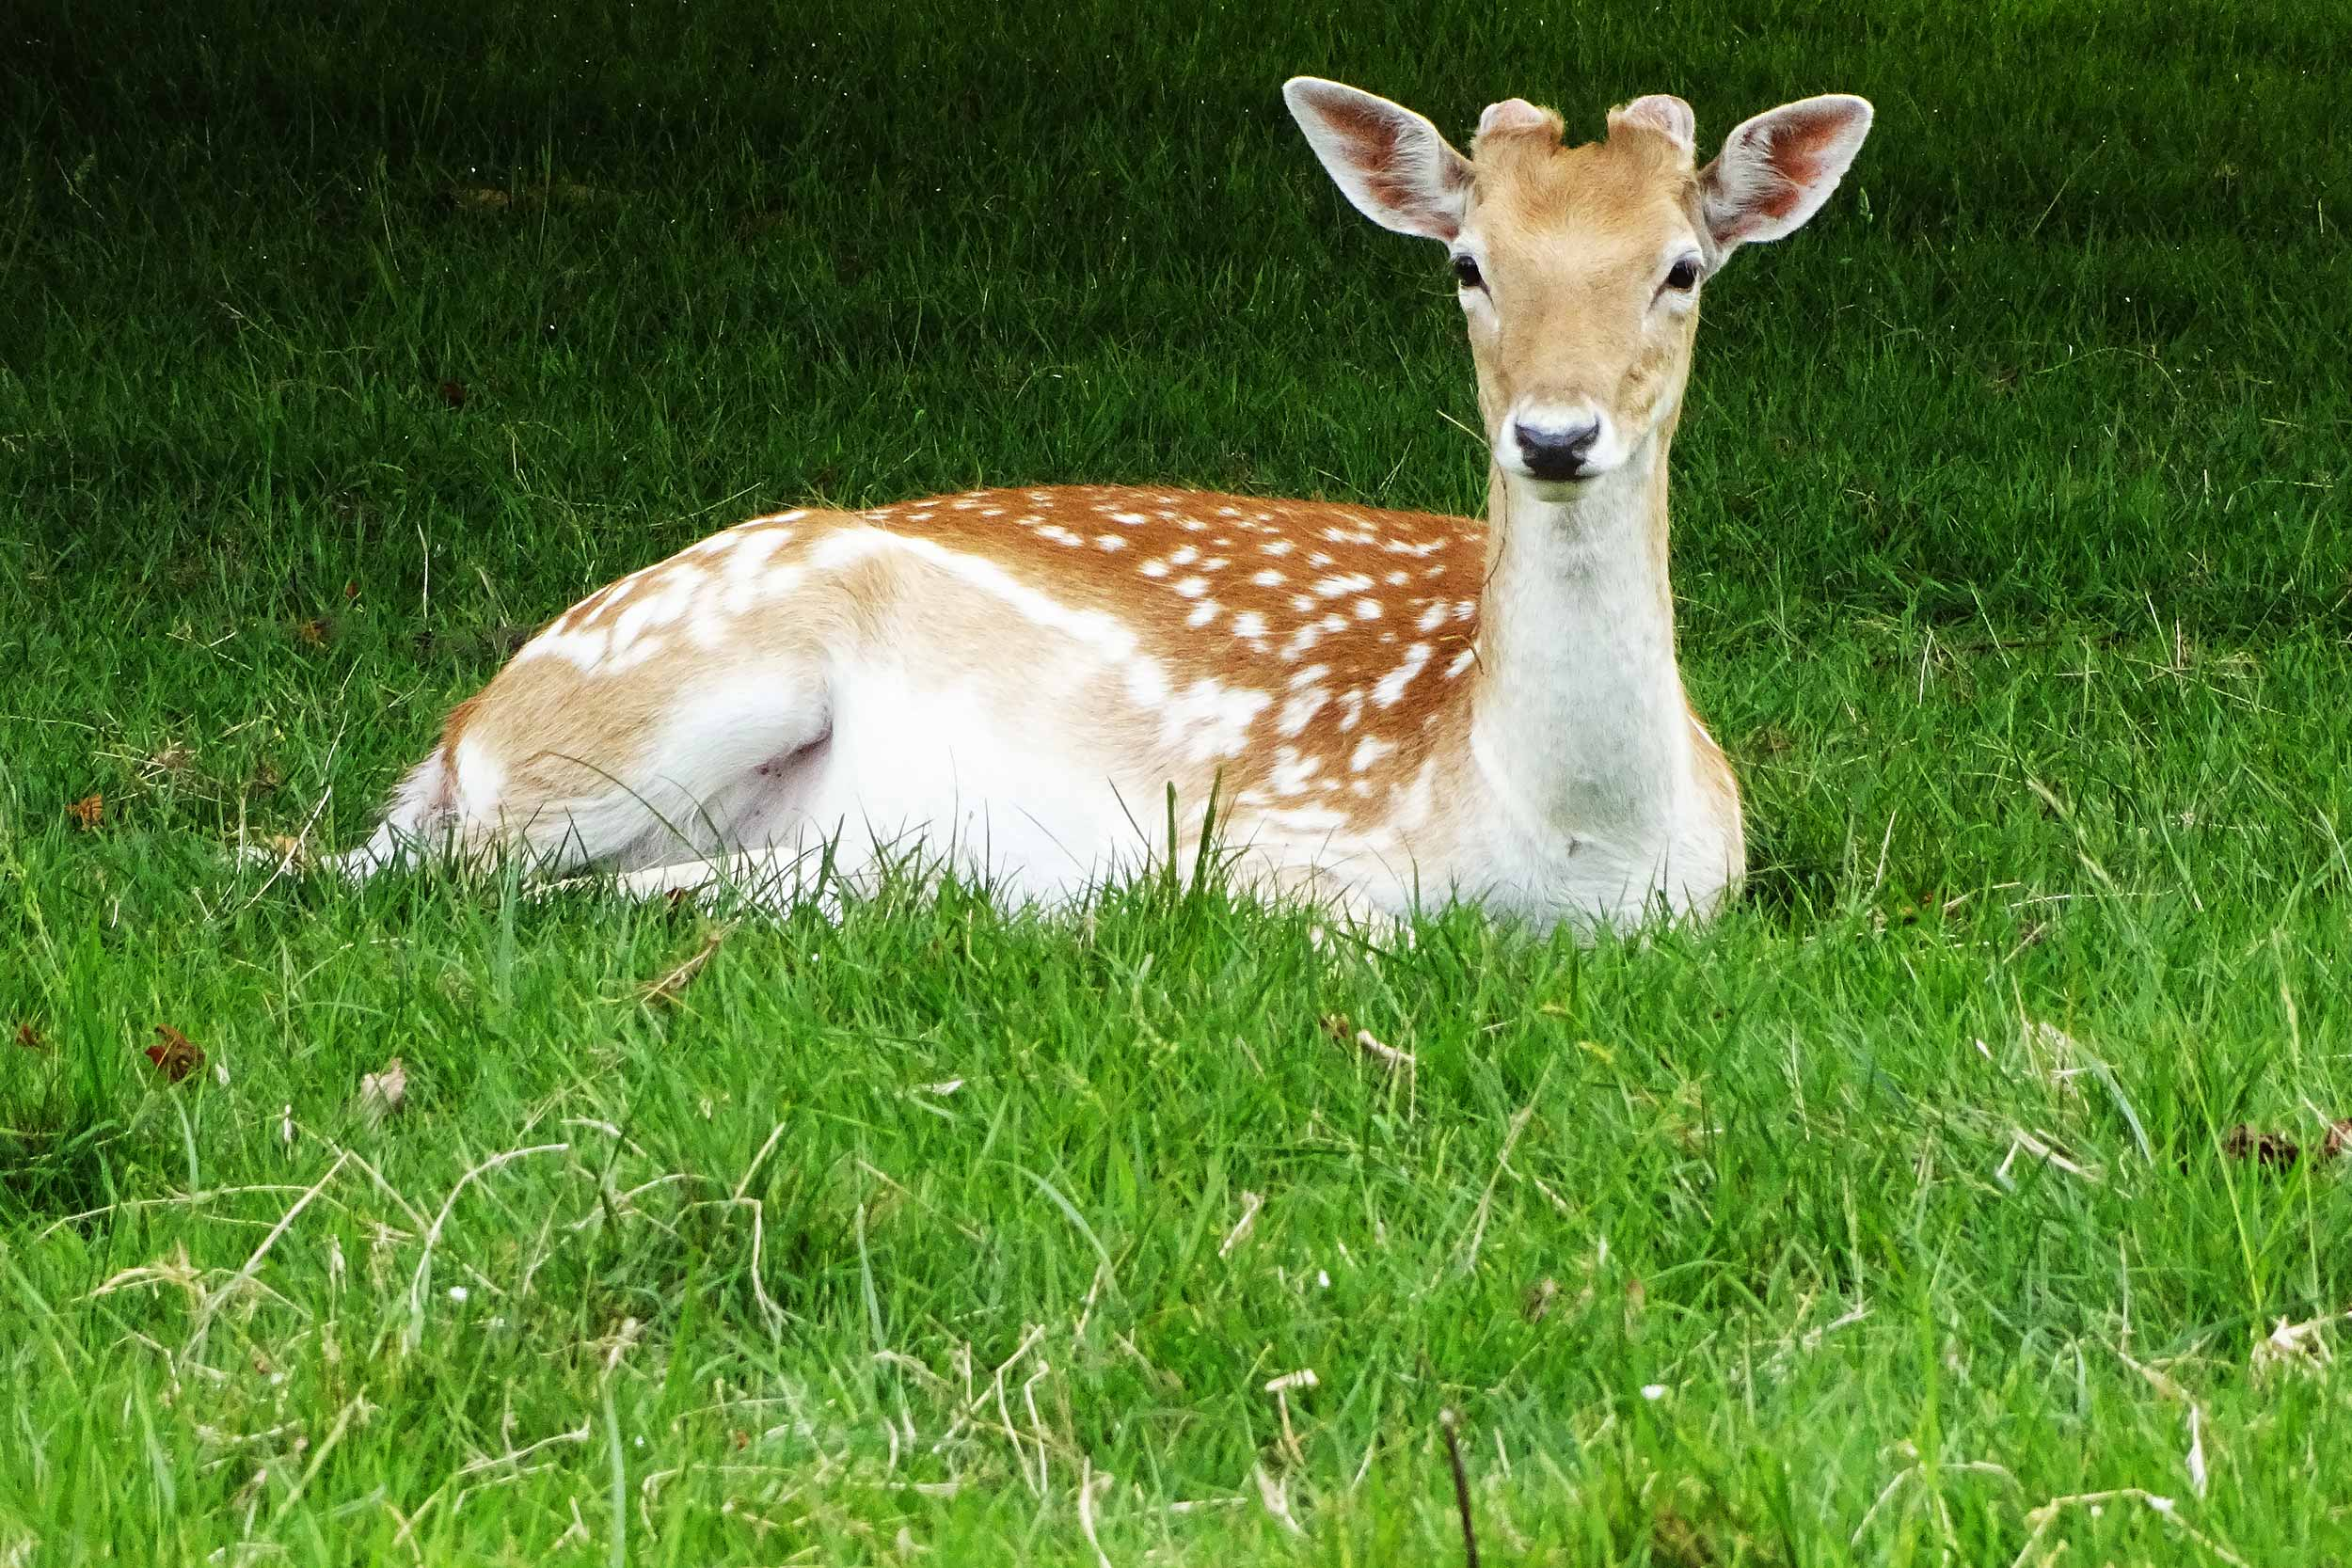 A deer at Richmond Park